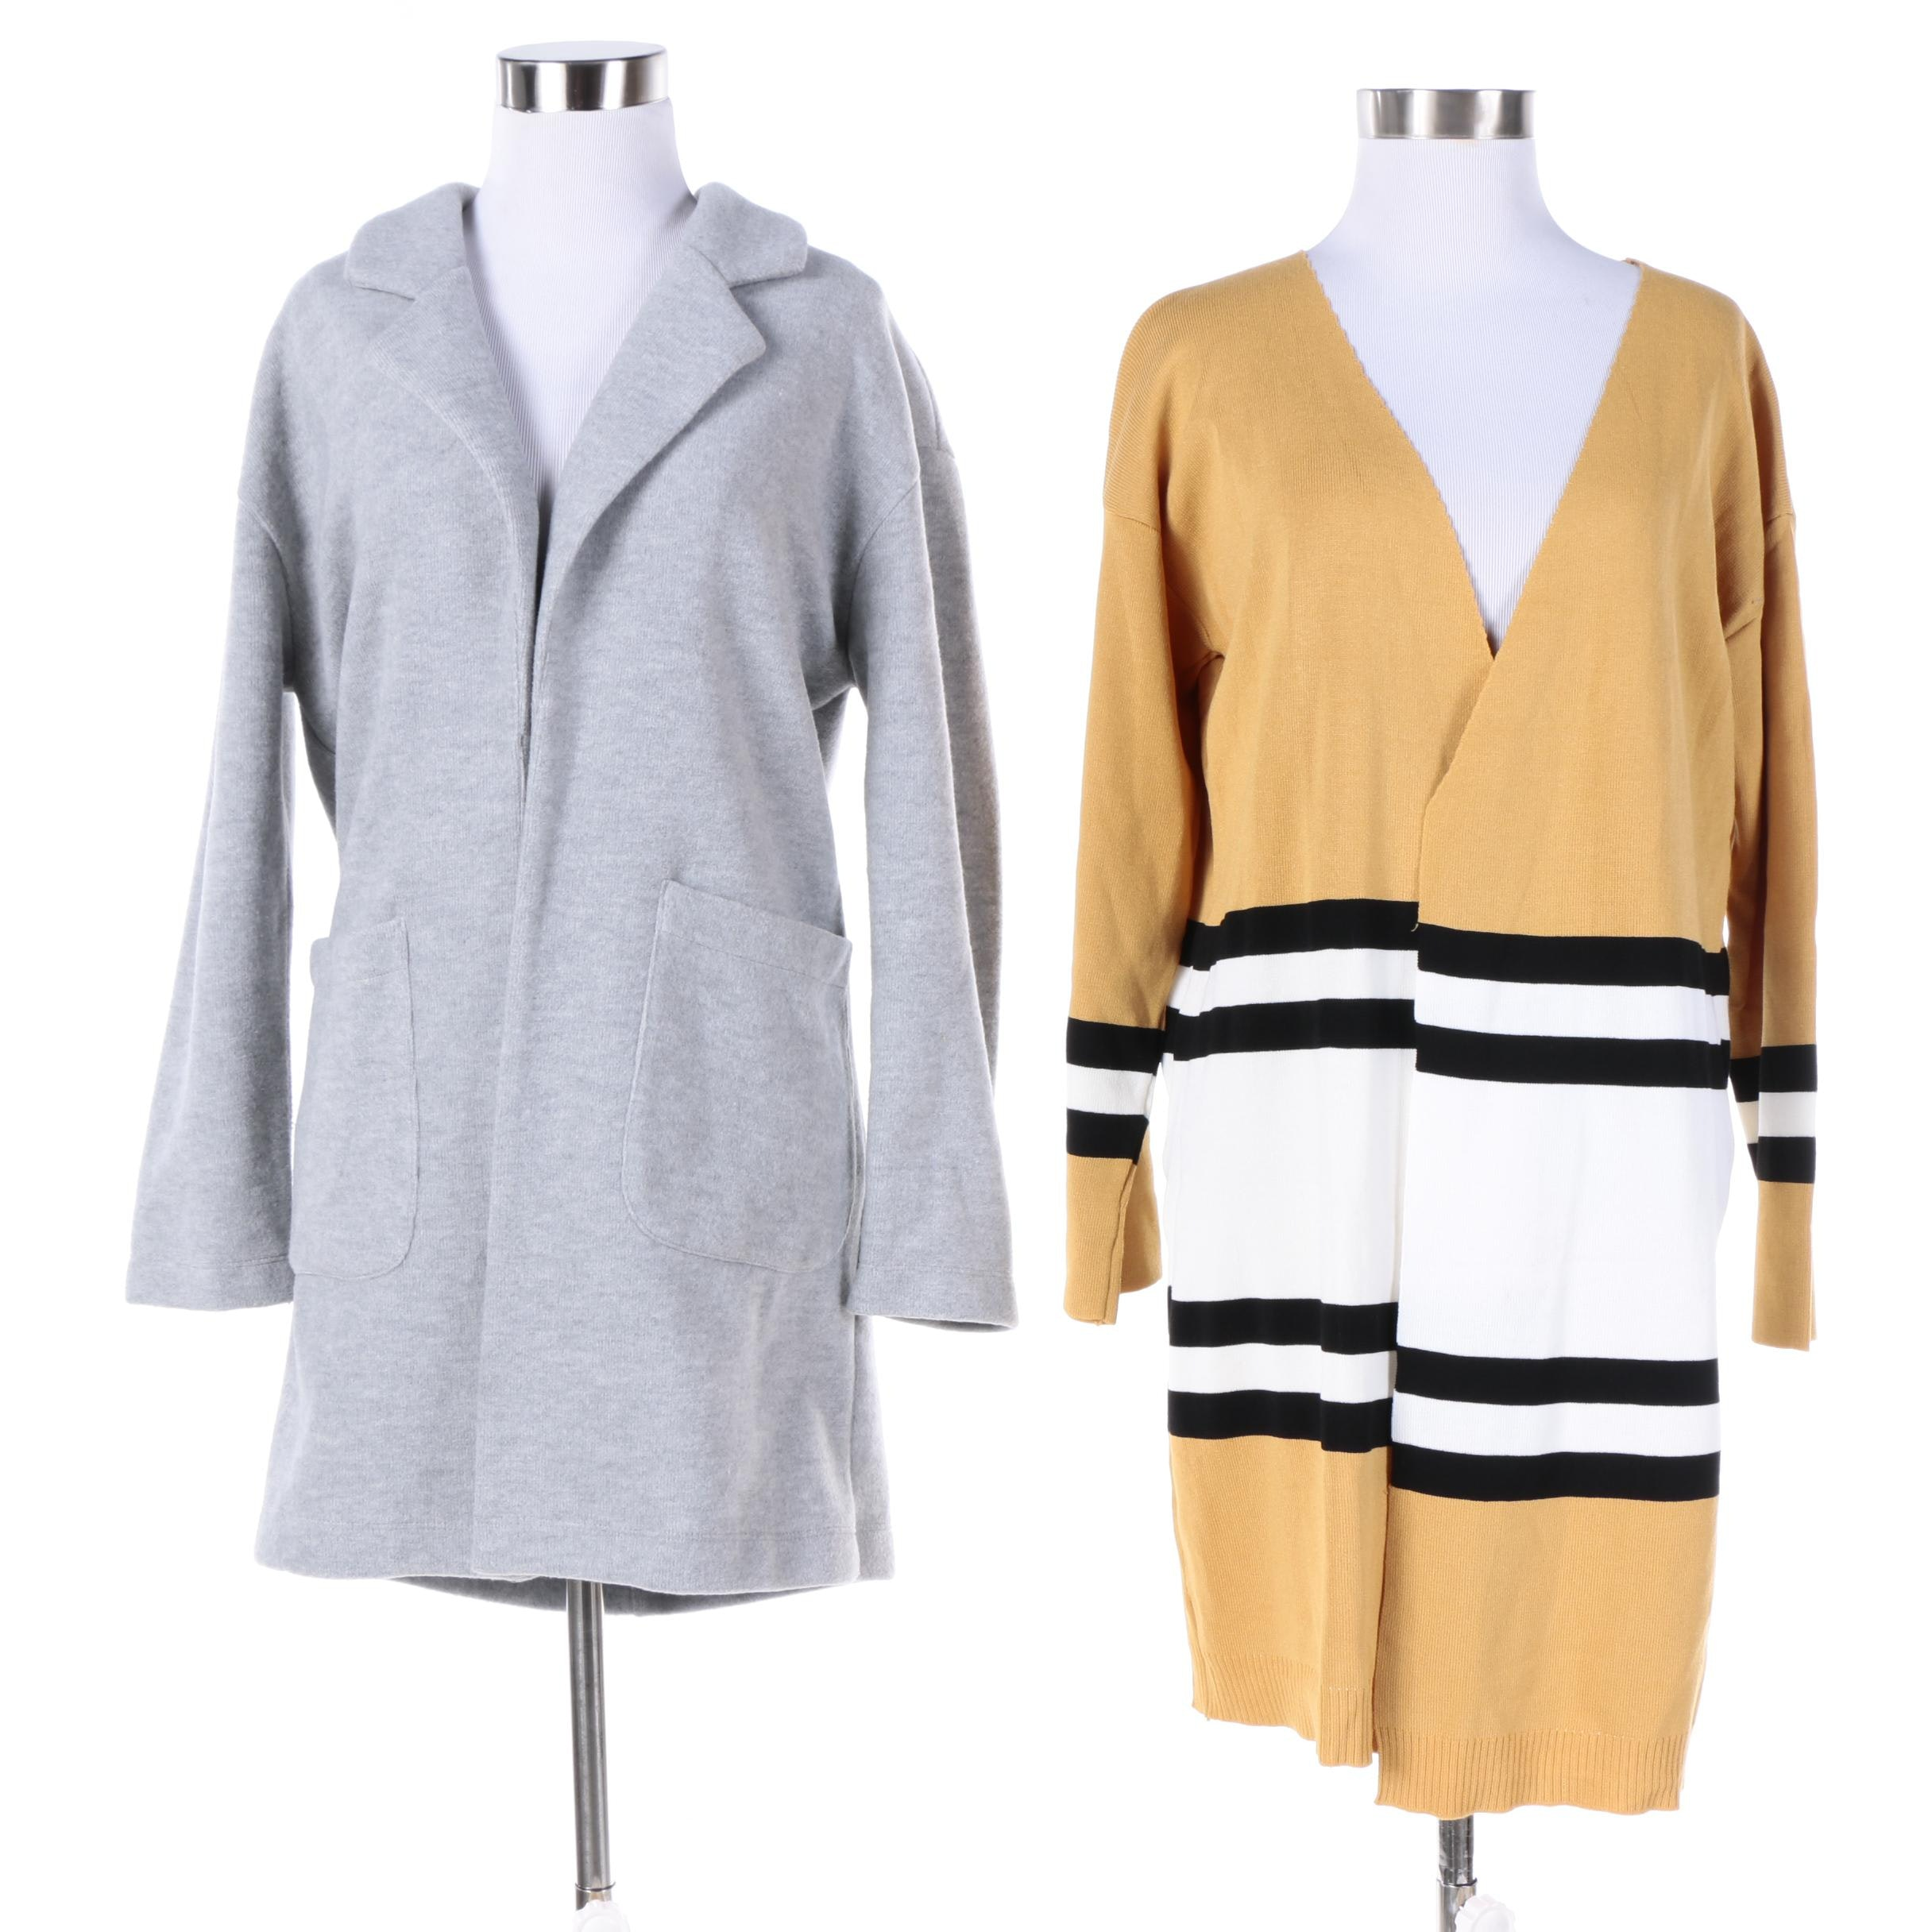 Women's Zara Jacket and Knit Cardigan